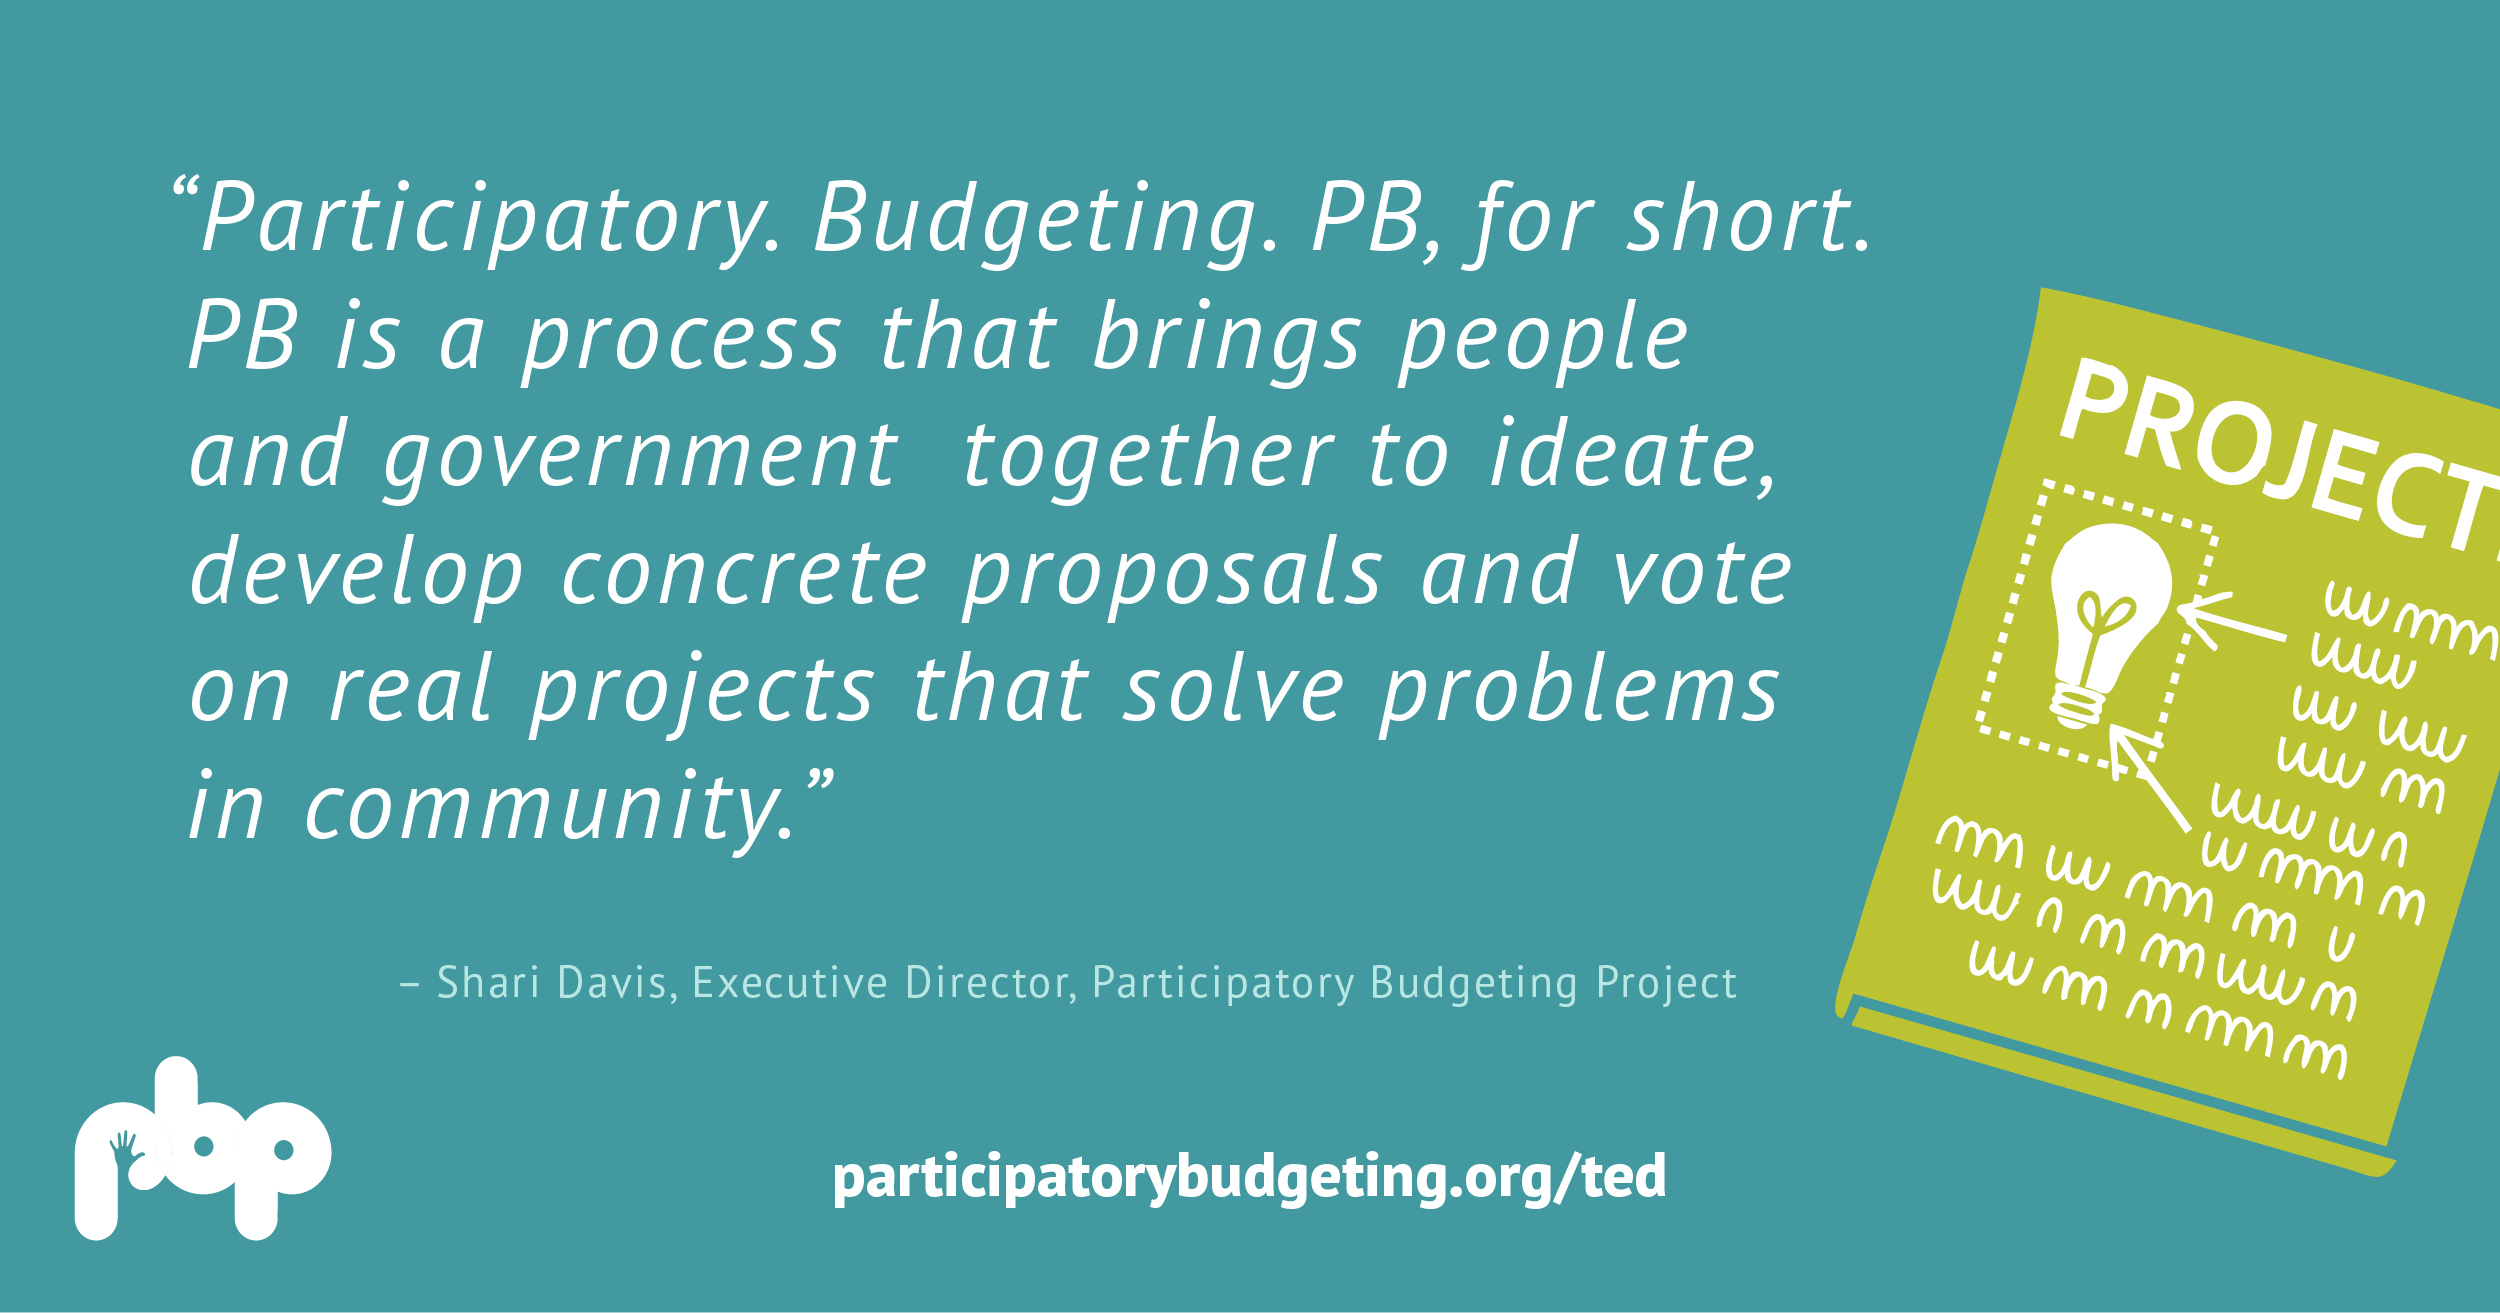 Participatory. Budgeting. PB, for short. PB is a process that brings people and government together to ideate, develop concrete proposals and vote on real projects that solve projects in community. - Shari Davis